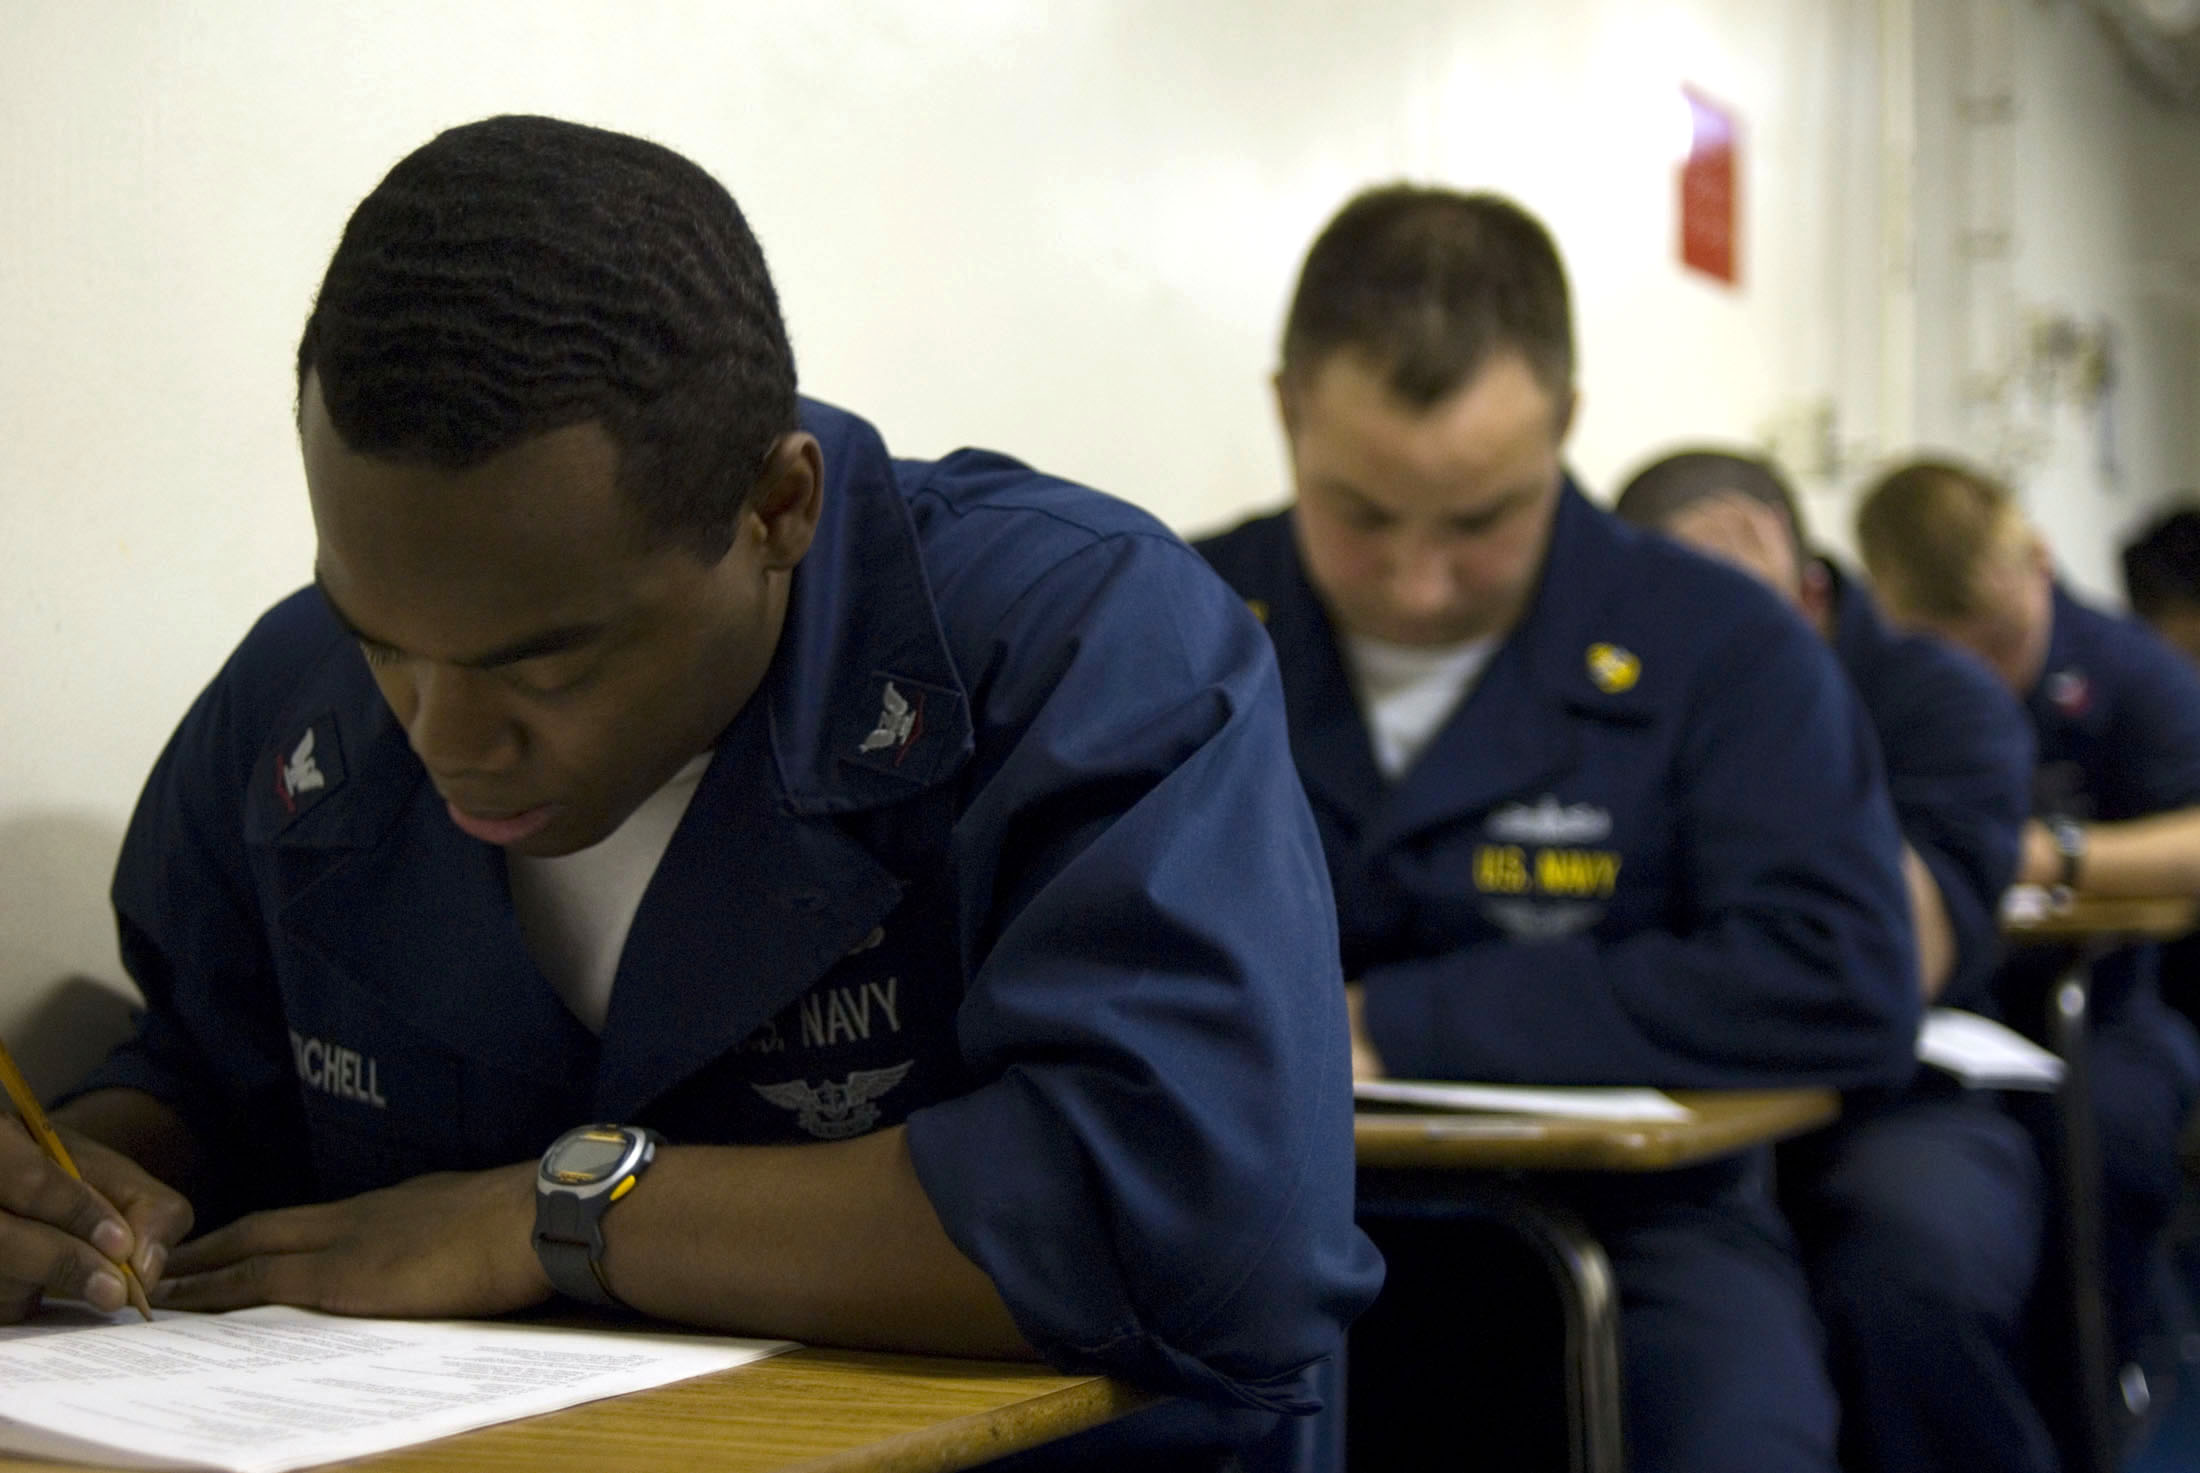 """admissions essay to navy To quote the letter: """"there is no mandate to apply the definition of the common data set to the us naval academy's admissions process of note, the requirements for admission to the service academies are different than other colleges and universities"""" and this was echoed by the academy spokesman quoted in dan de vise's article of 28 december."""